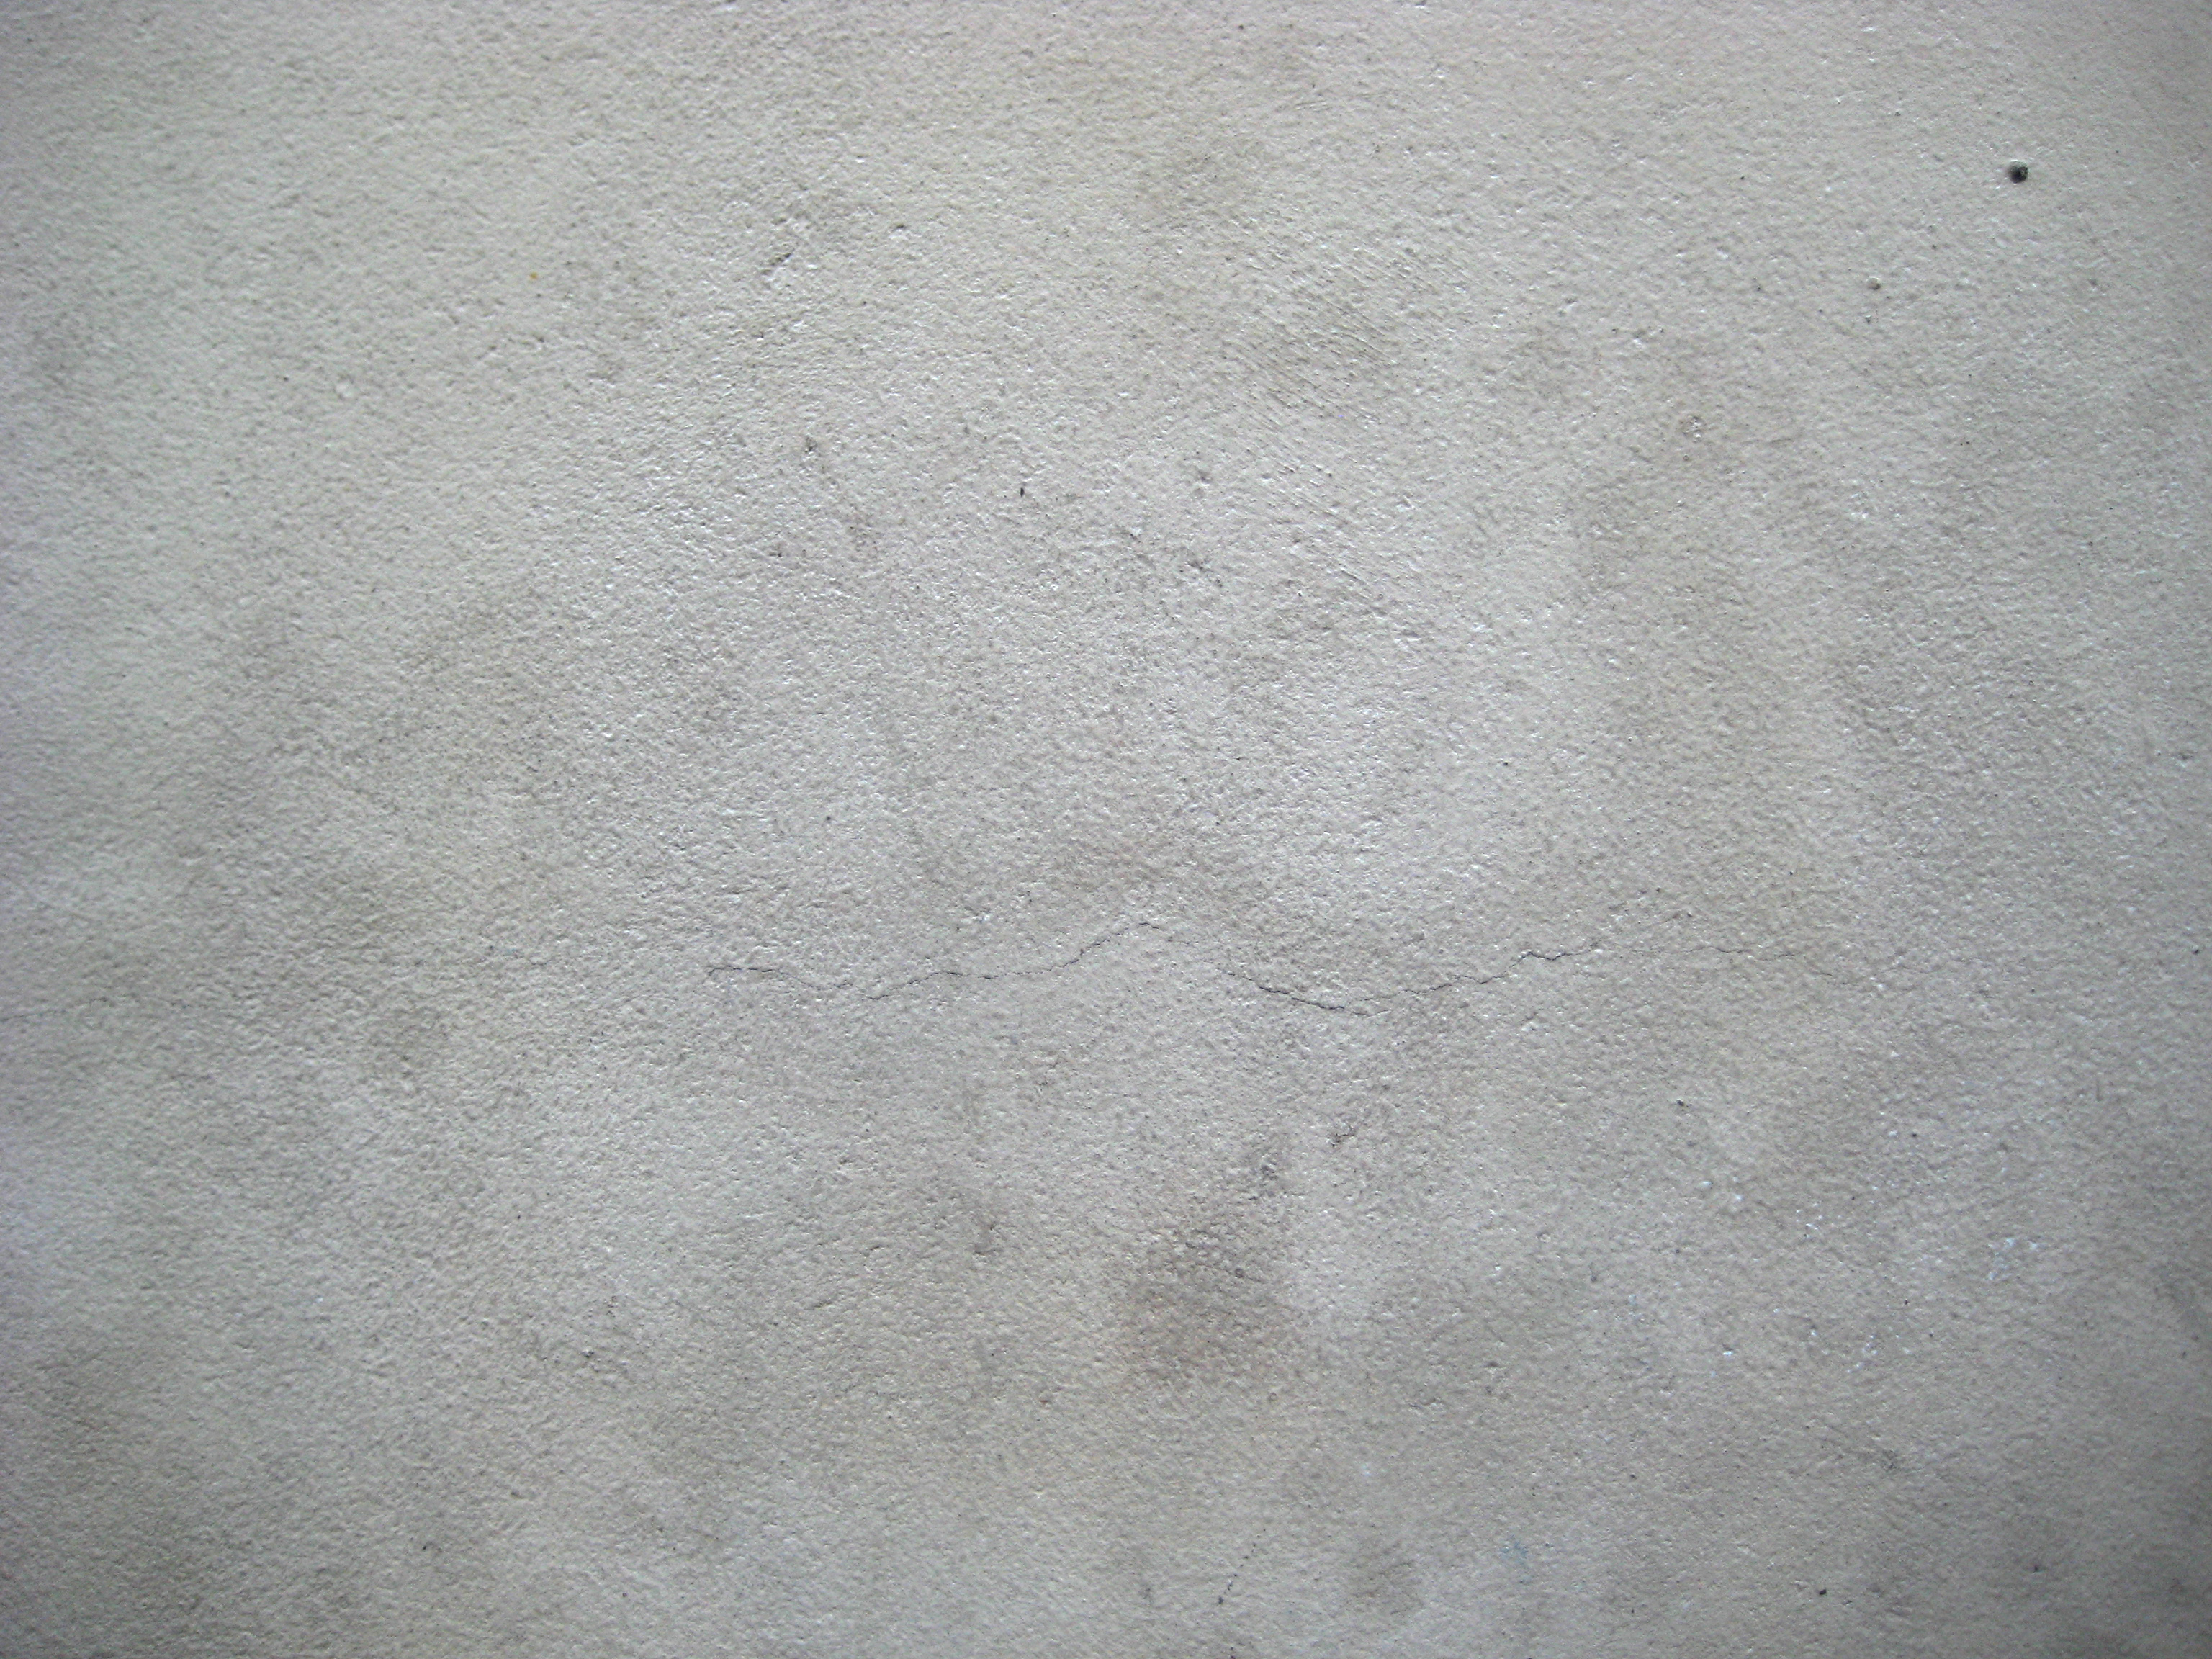 Concrete smooth texture photos urban dirty for Smooth concrete texture